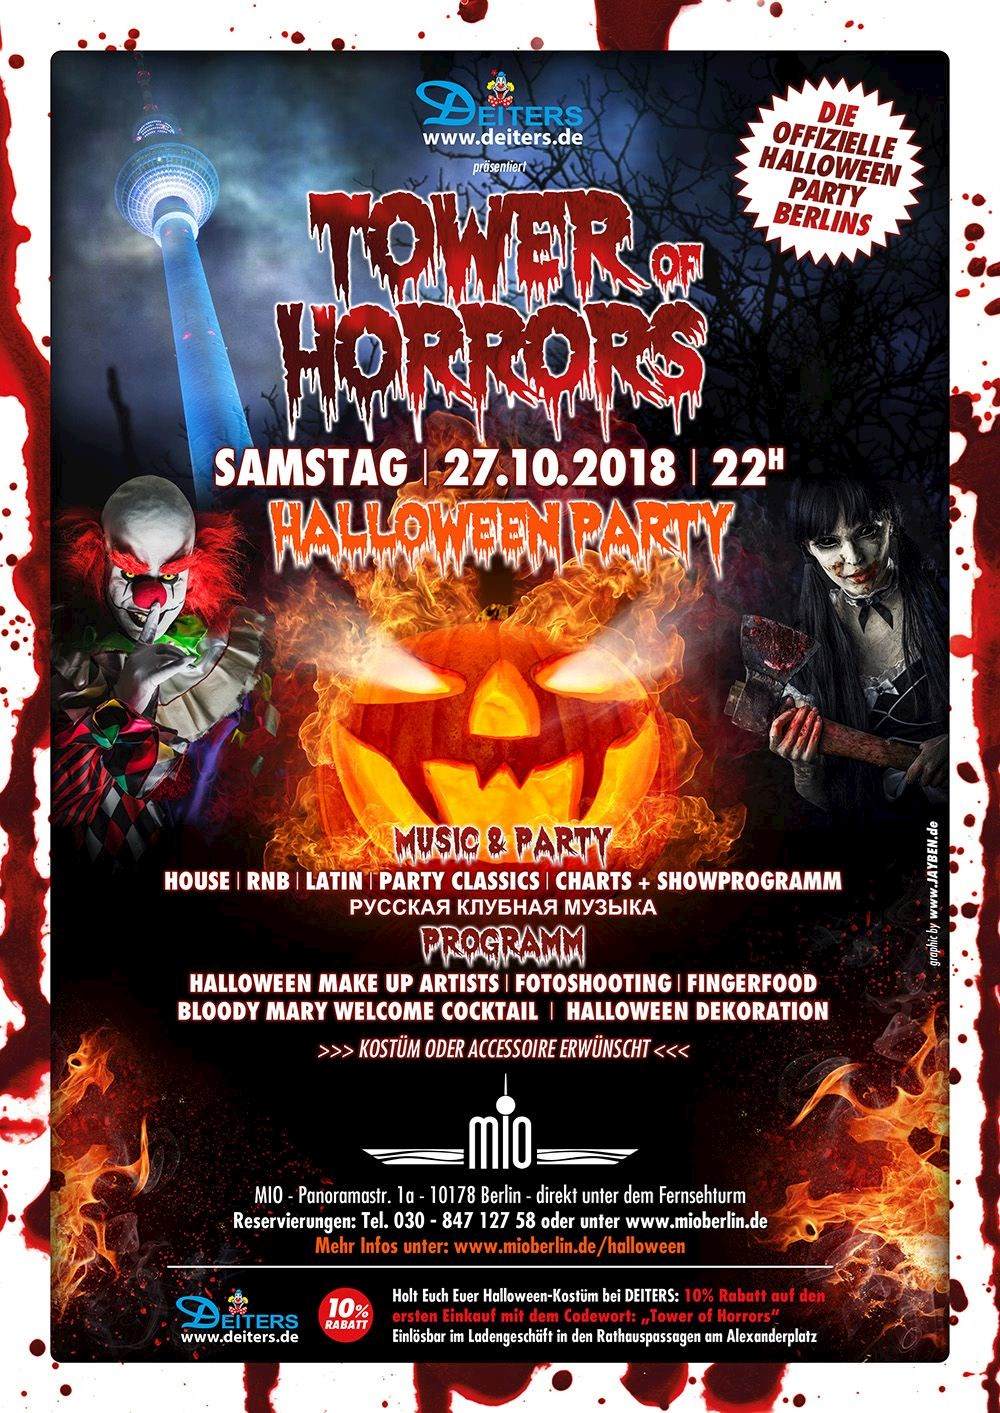 Mio Berlin 8. Tower of Horrors - Die Offizielle Halloween Party